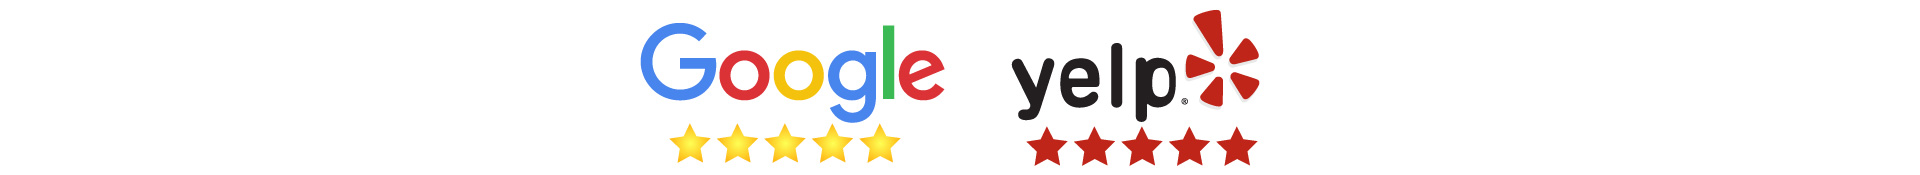 getTREAD has great 5 star reviews from Google and Yelp!